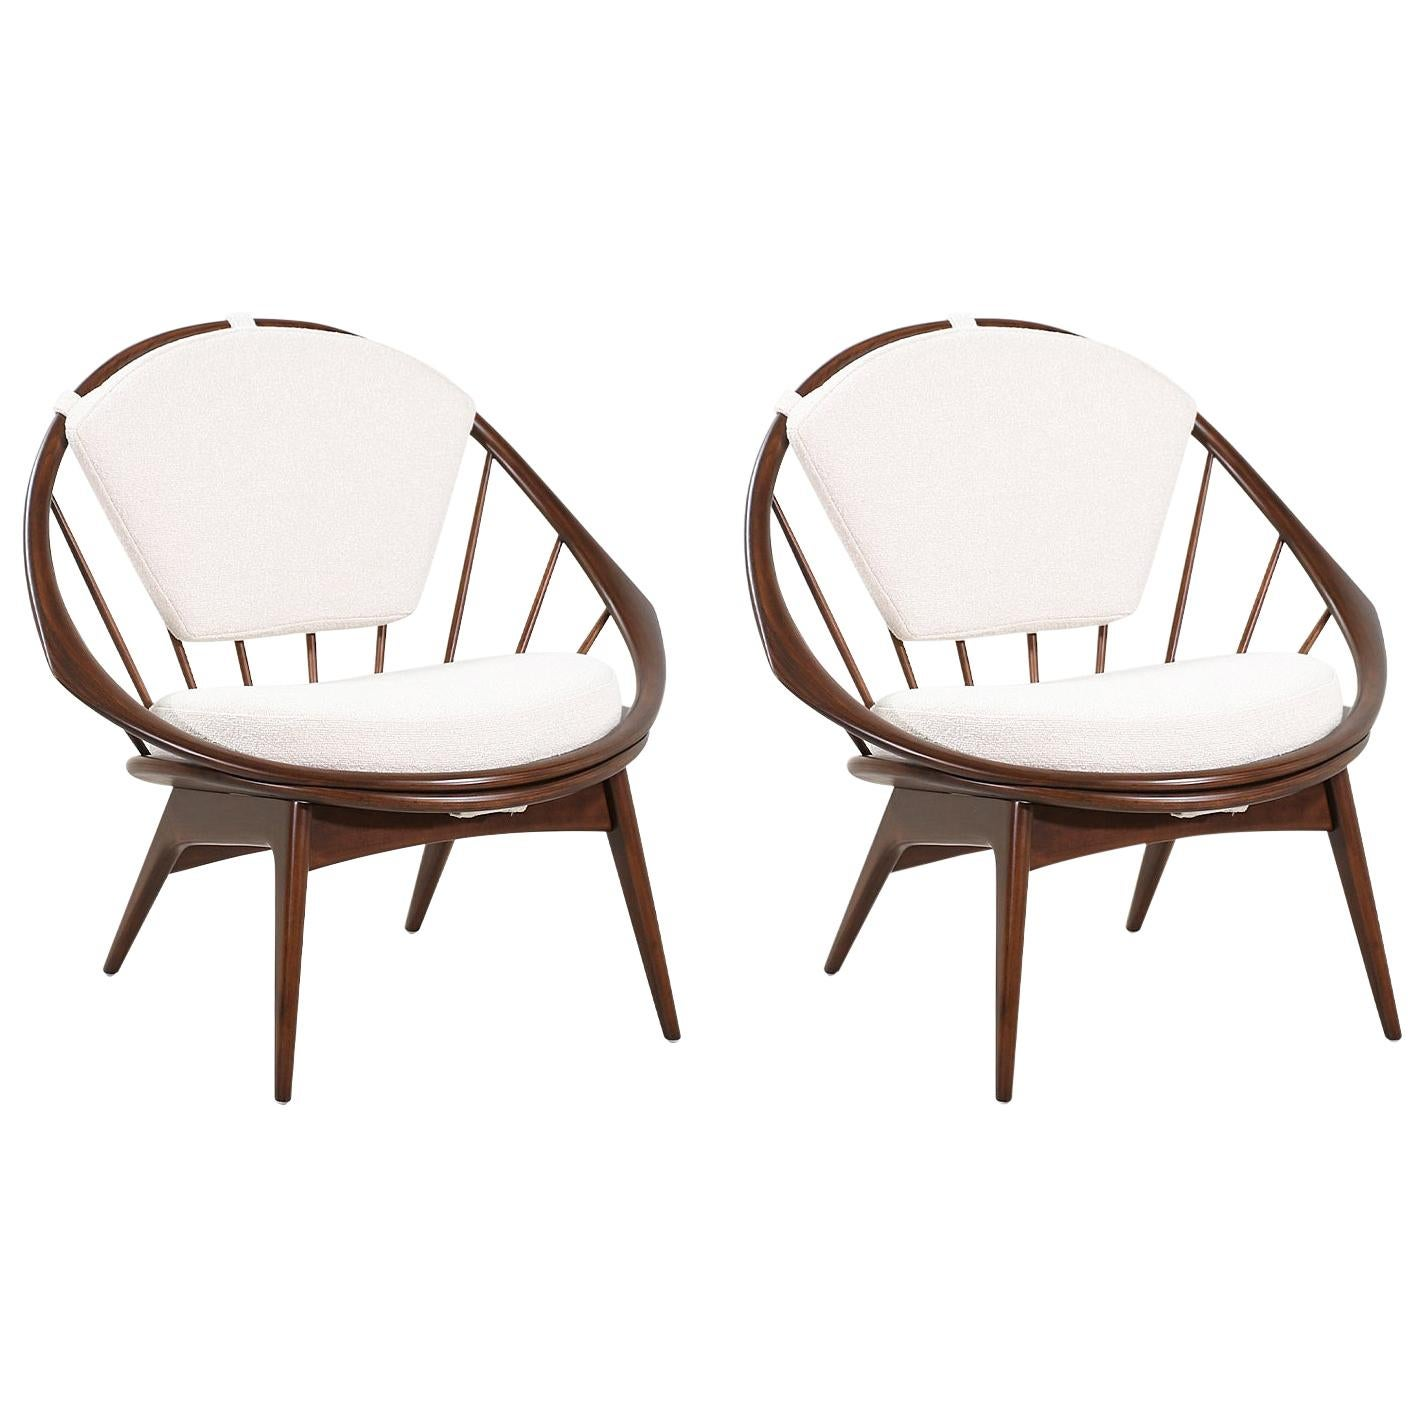 "Ib Kofod-Larsen ""Hoop"" Lounge Chairs for Selig"